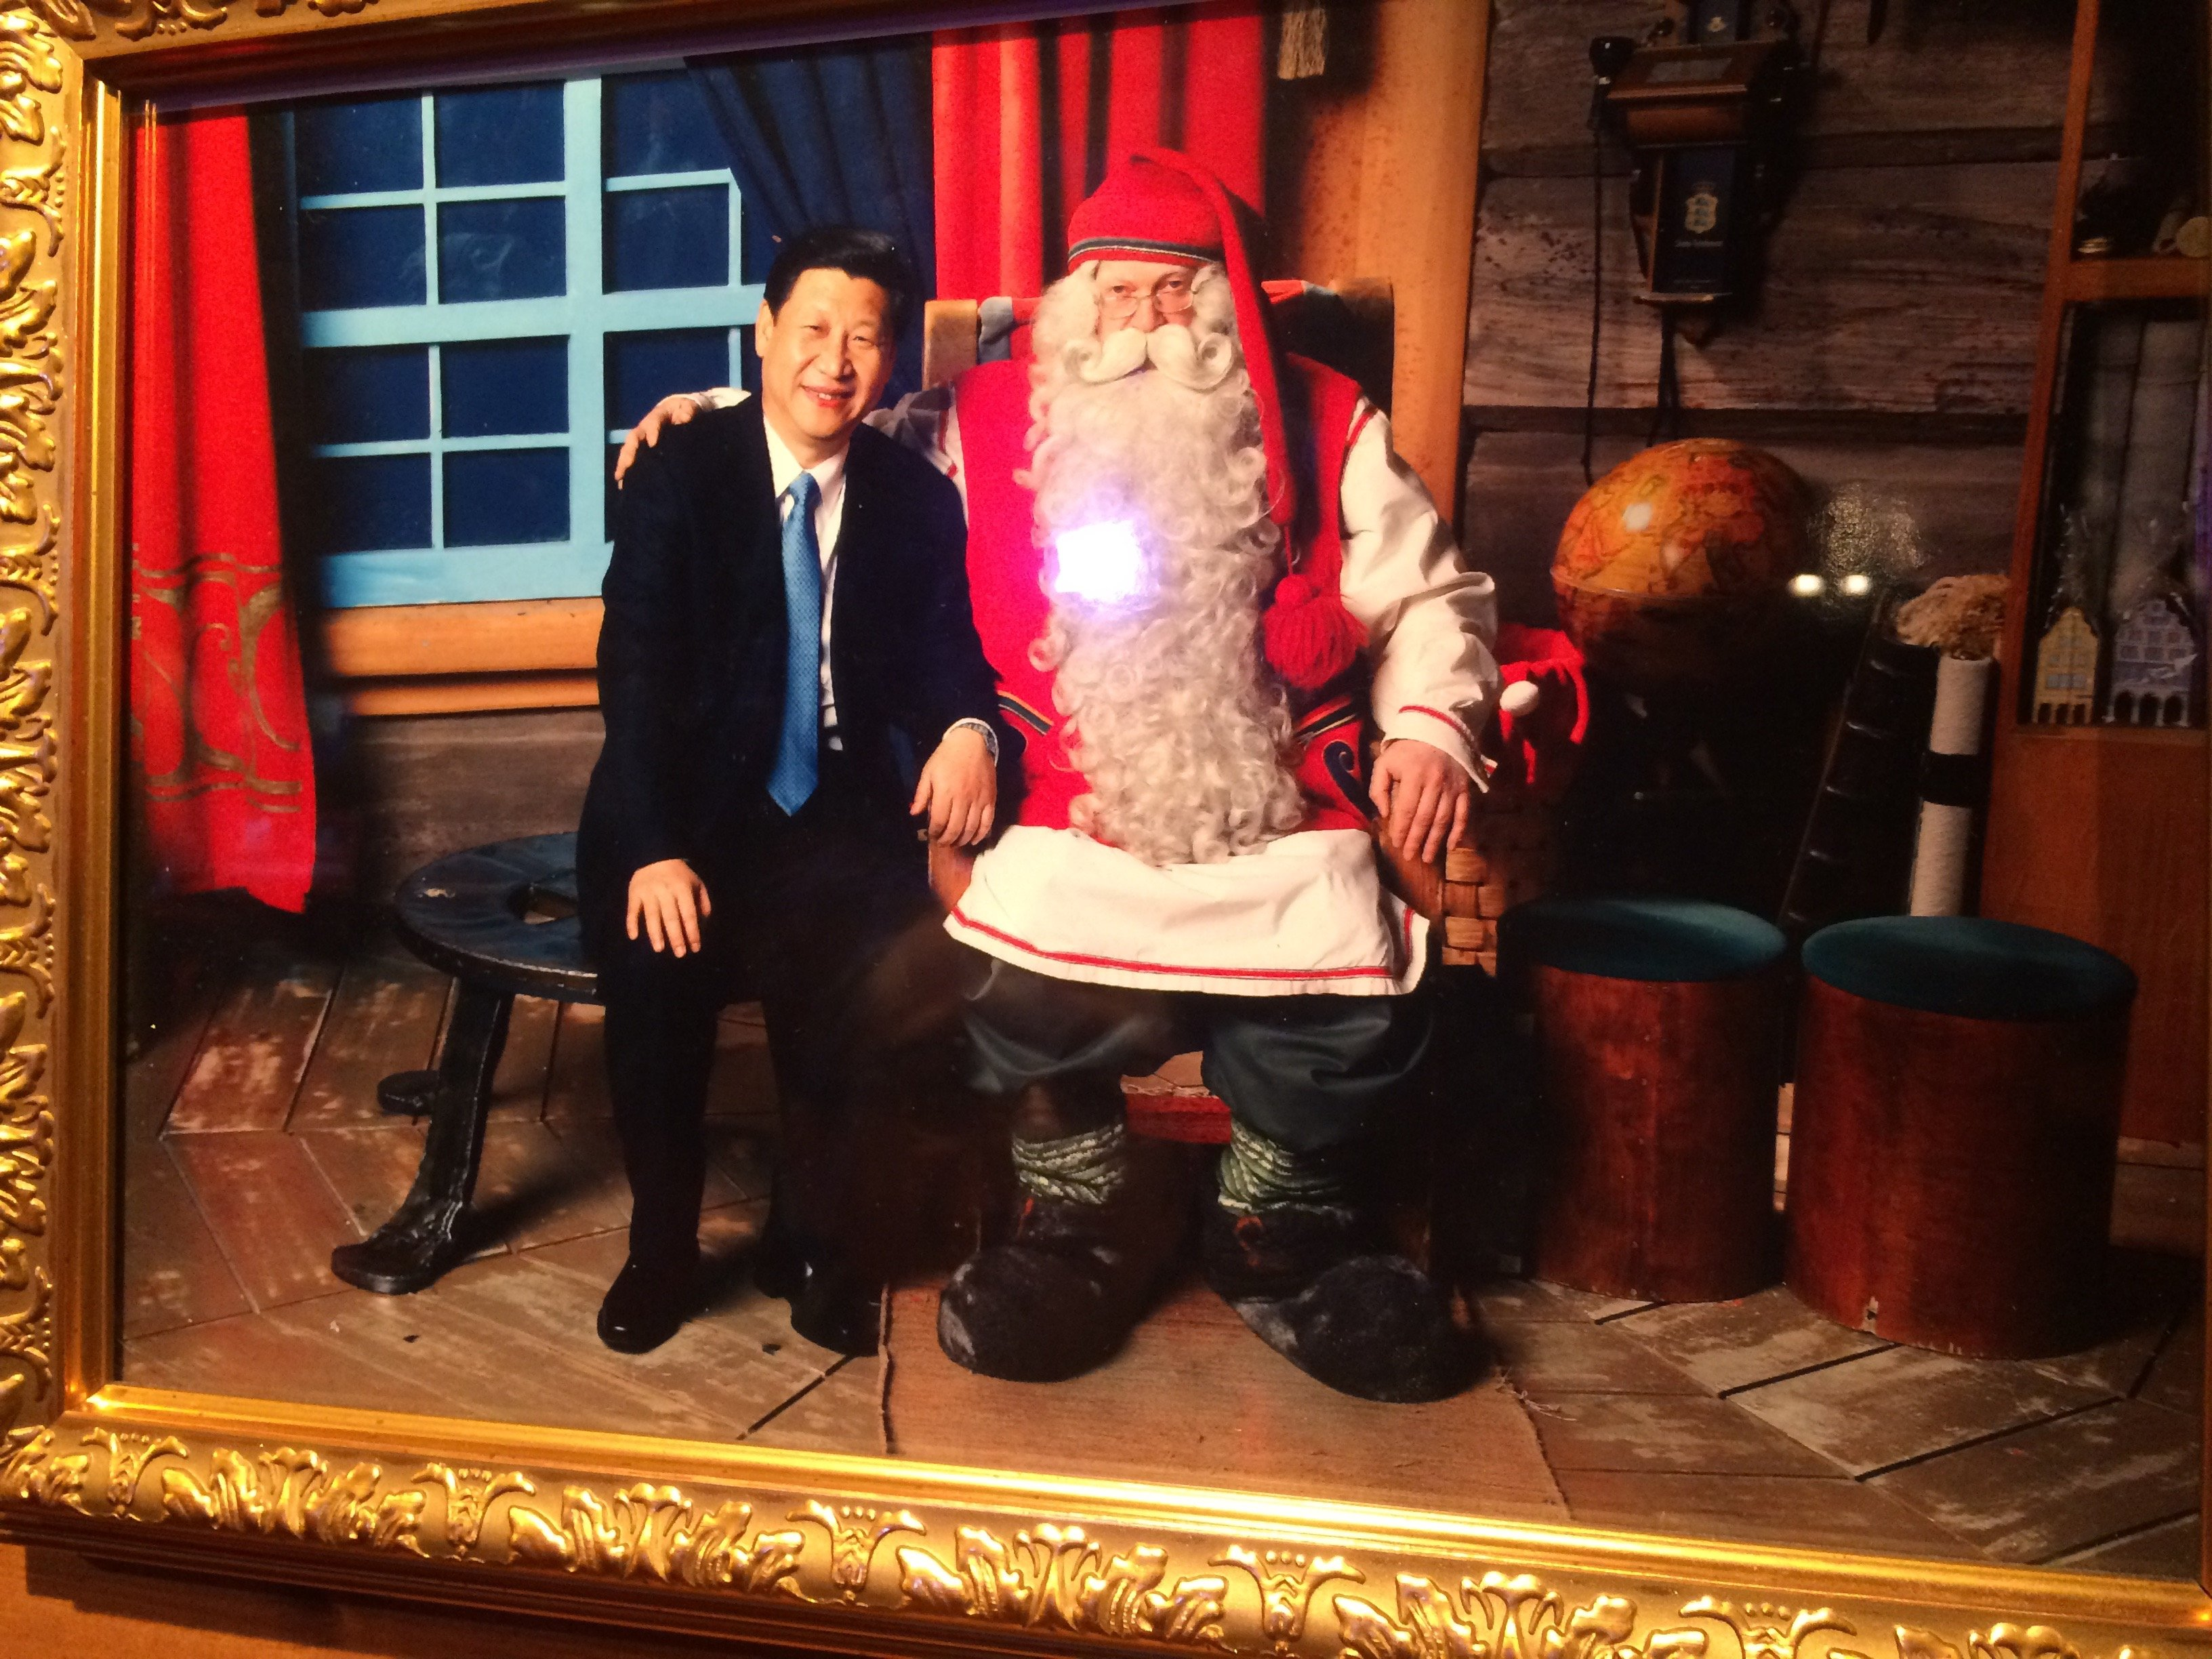 The list of people who have visited Santa Claus in Rovaniemi is worth checking out. Here, China's Xi Jinping poses with the jolly old elf in 2010, while serving as vice-president.